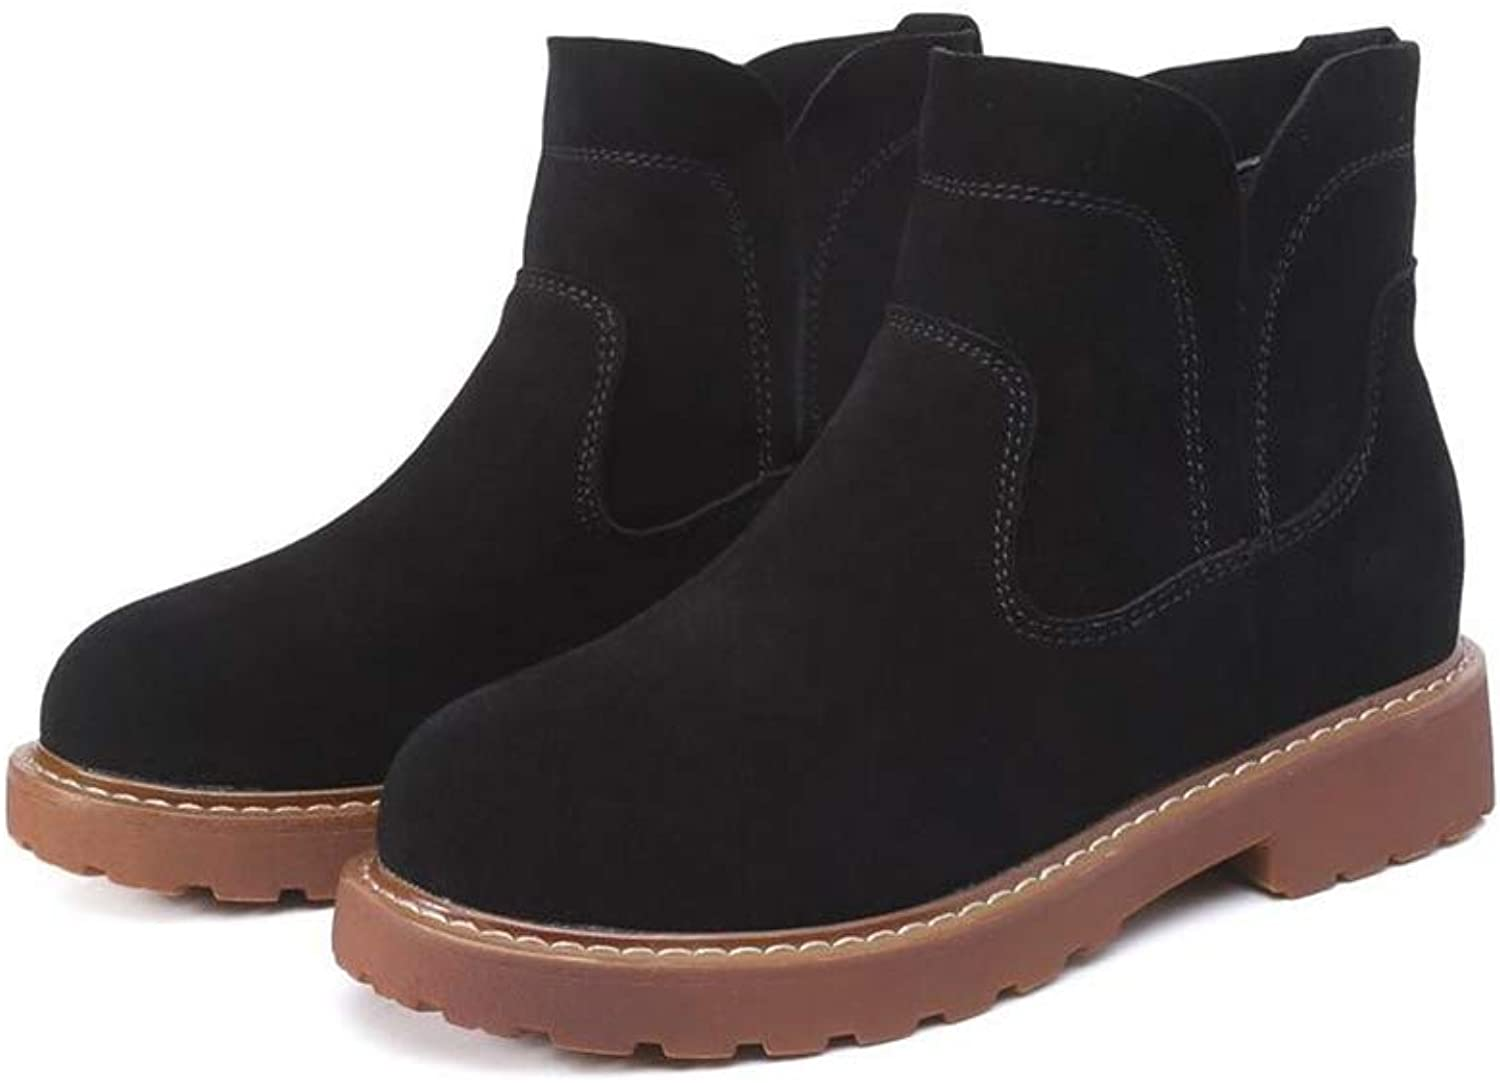 SUNNY Store Women's Round Closed Toe Chelsea Faux Suede Low Heel Ankle Boot